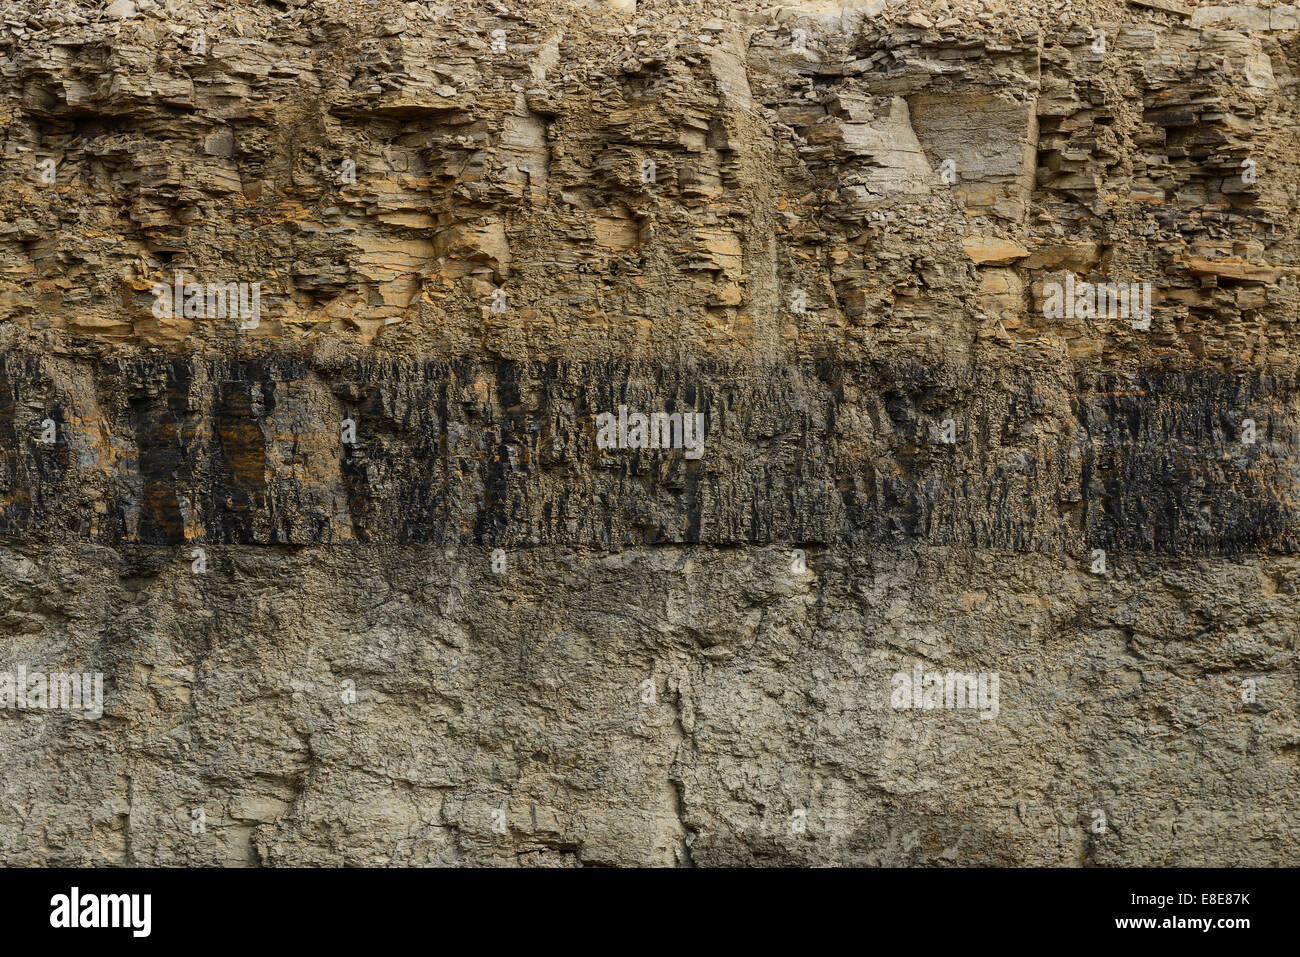 A seam of coal visible in a cross section of earth - Stock Image